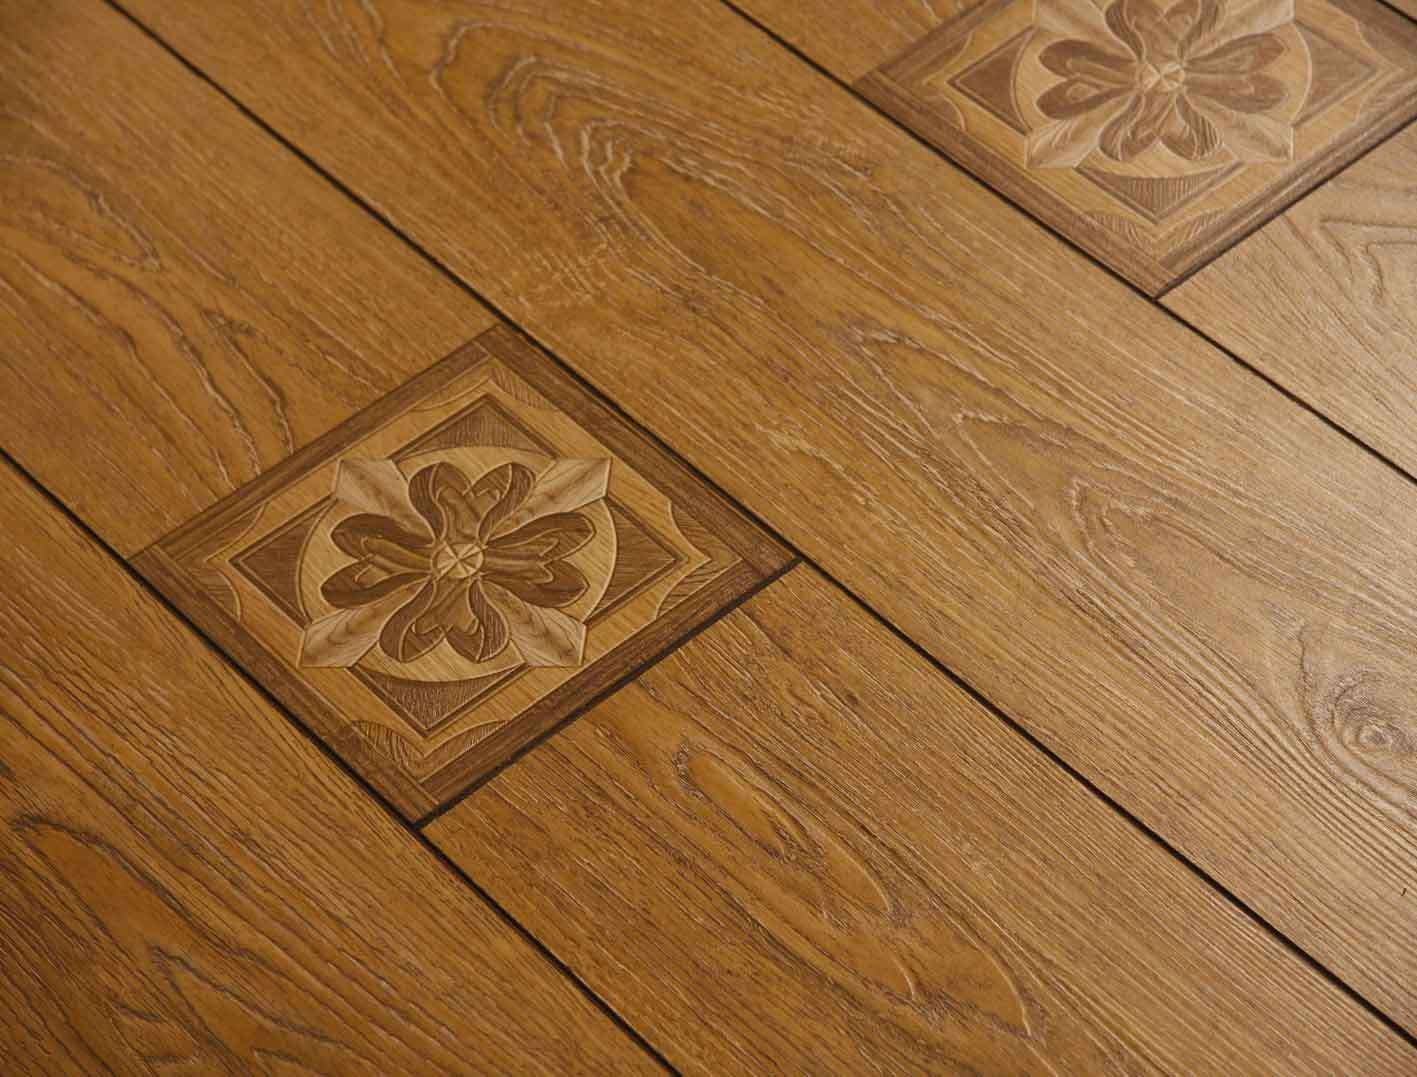 China laminate flooring parquet flooring photos pictures for Laminate tiles